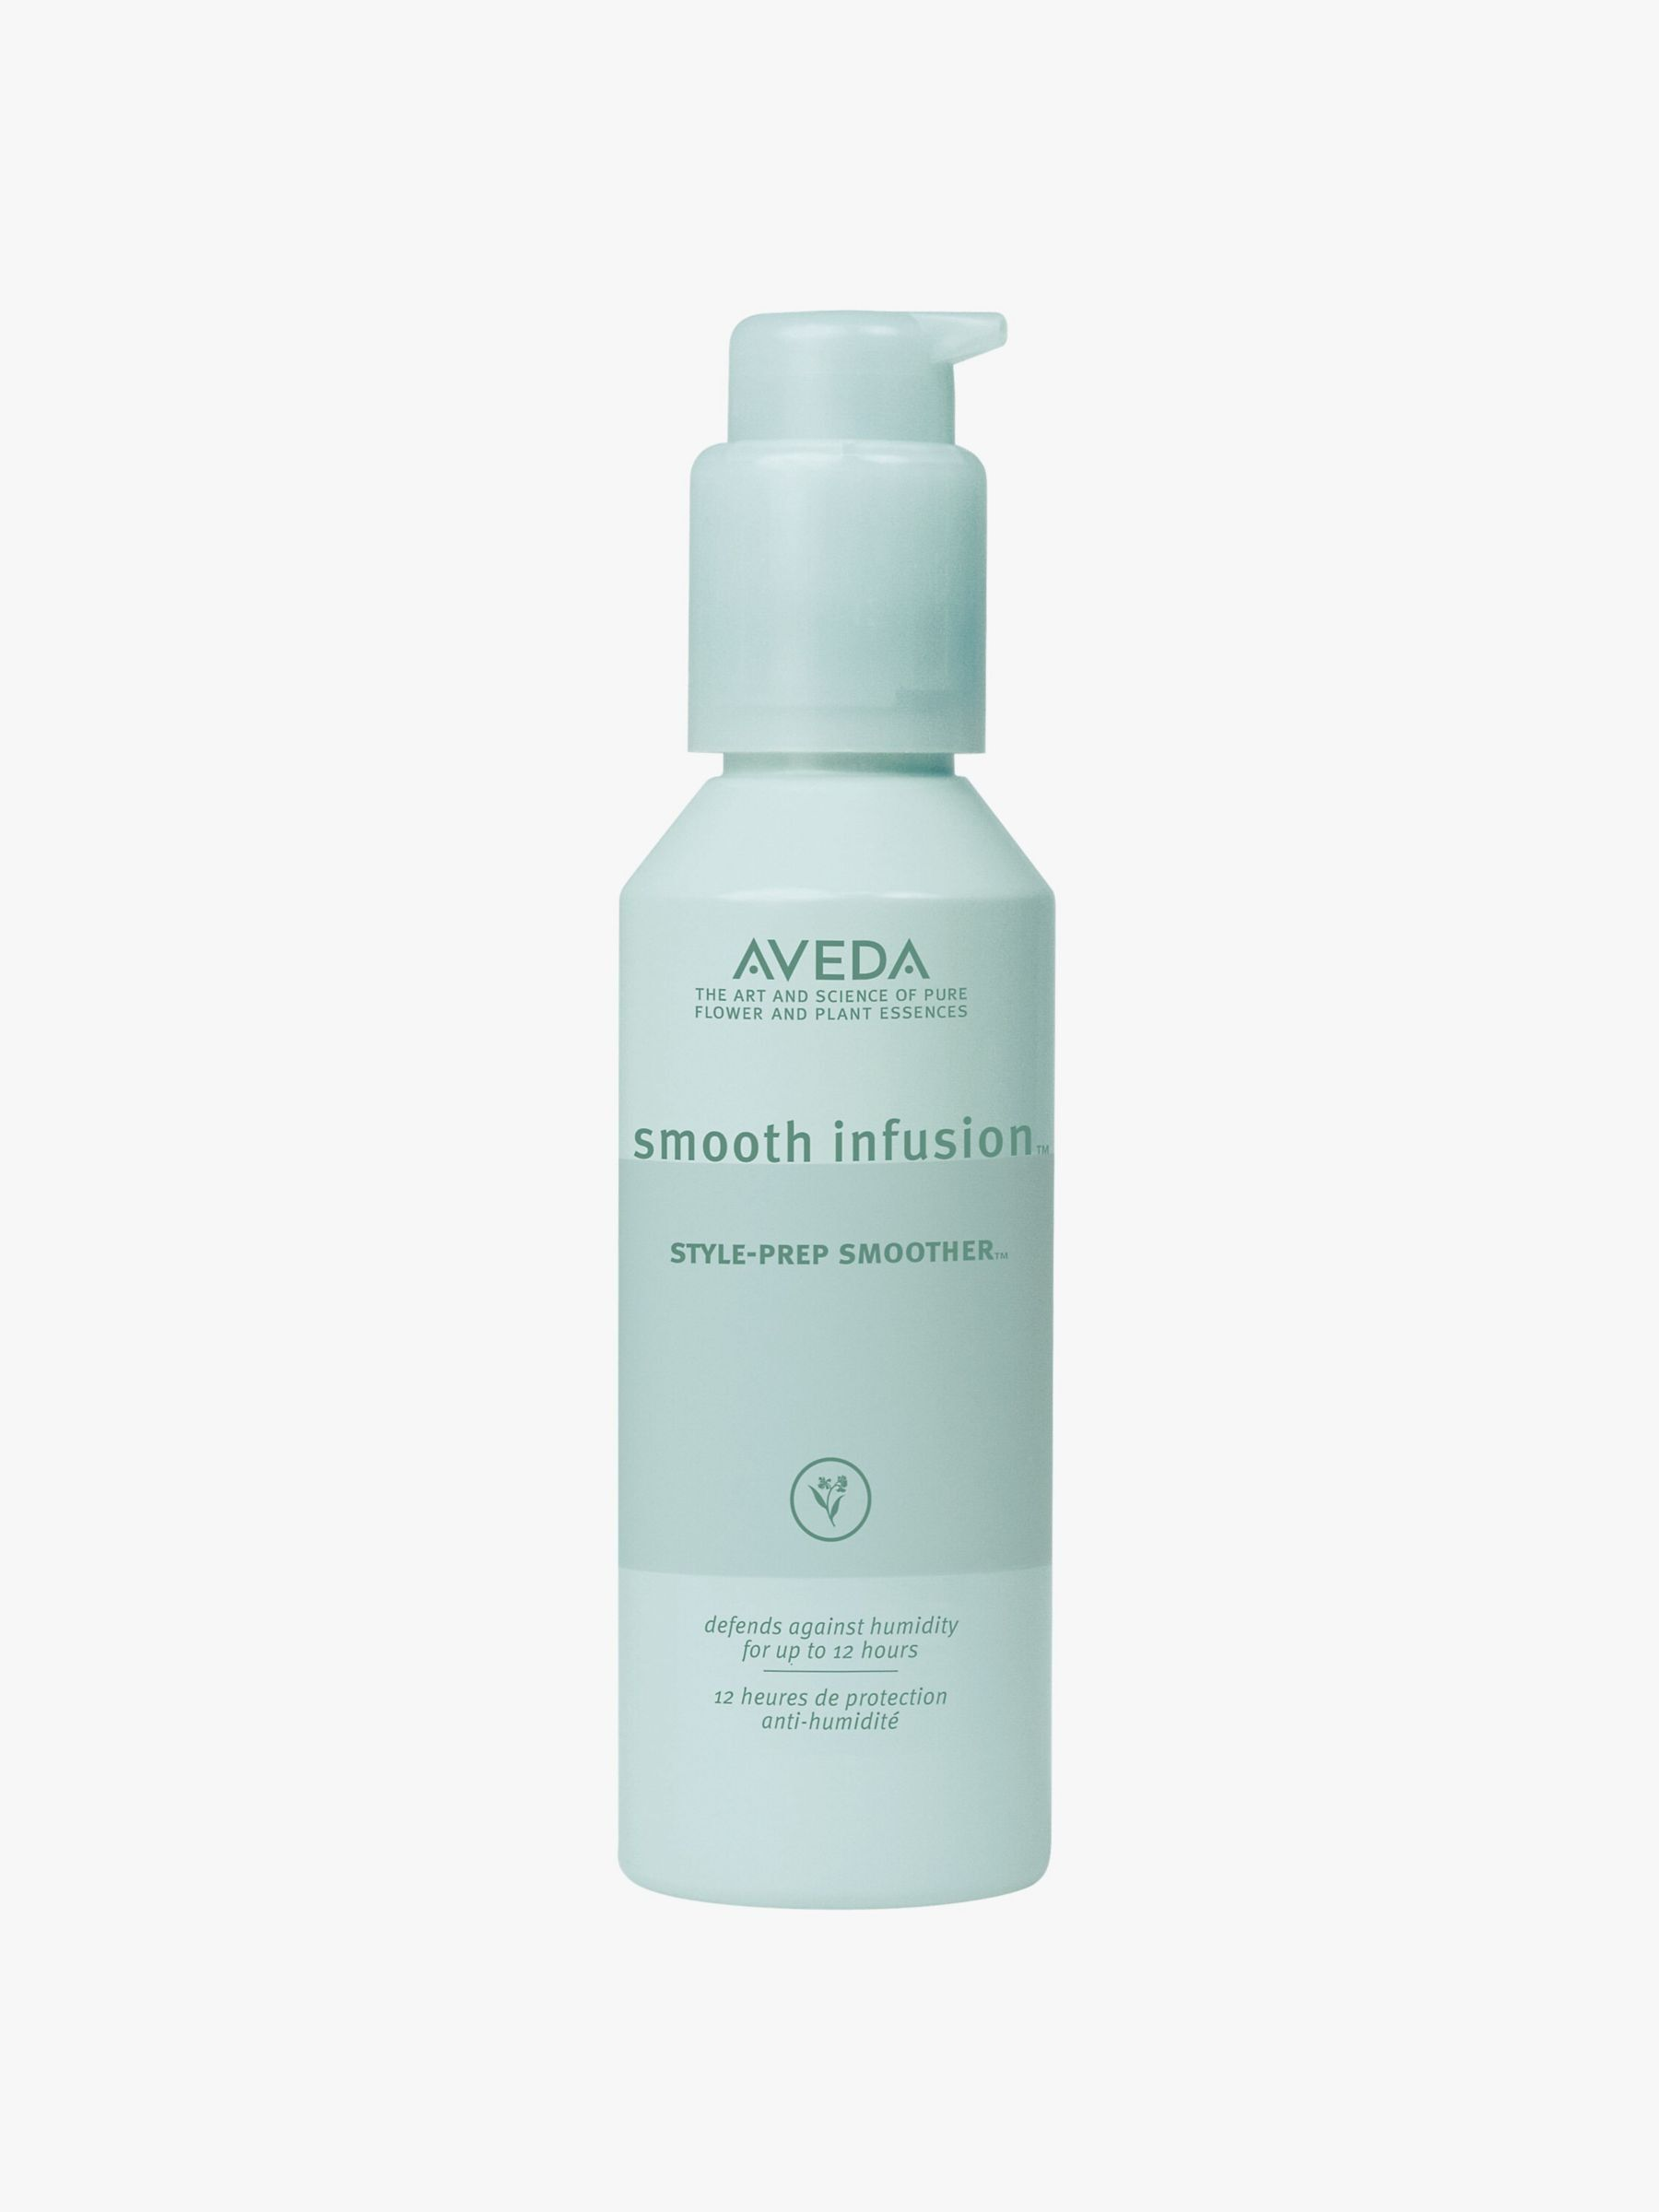 Aveda Smooth Infusion Style Prep Smoother Aveda Pure Products